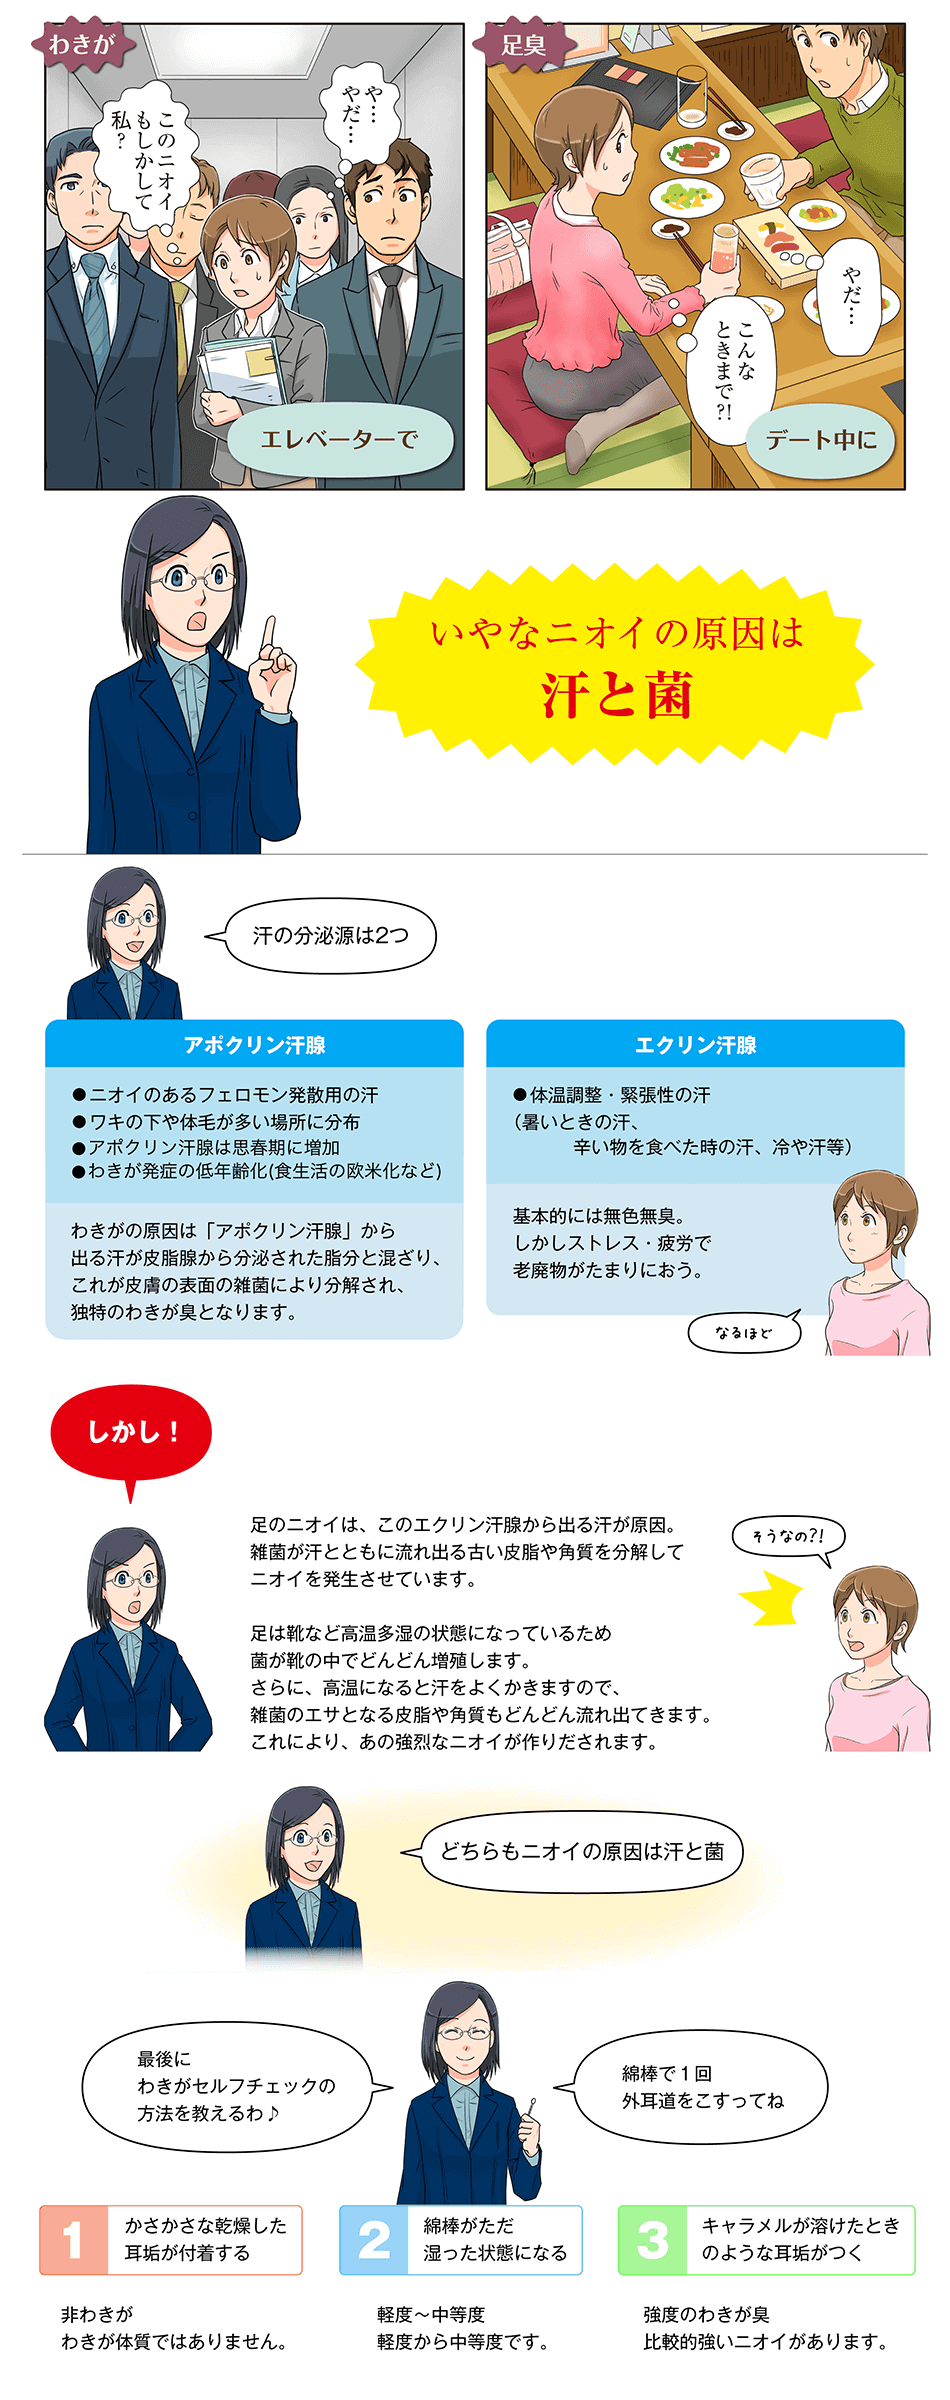 cleaneo、漫画